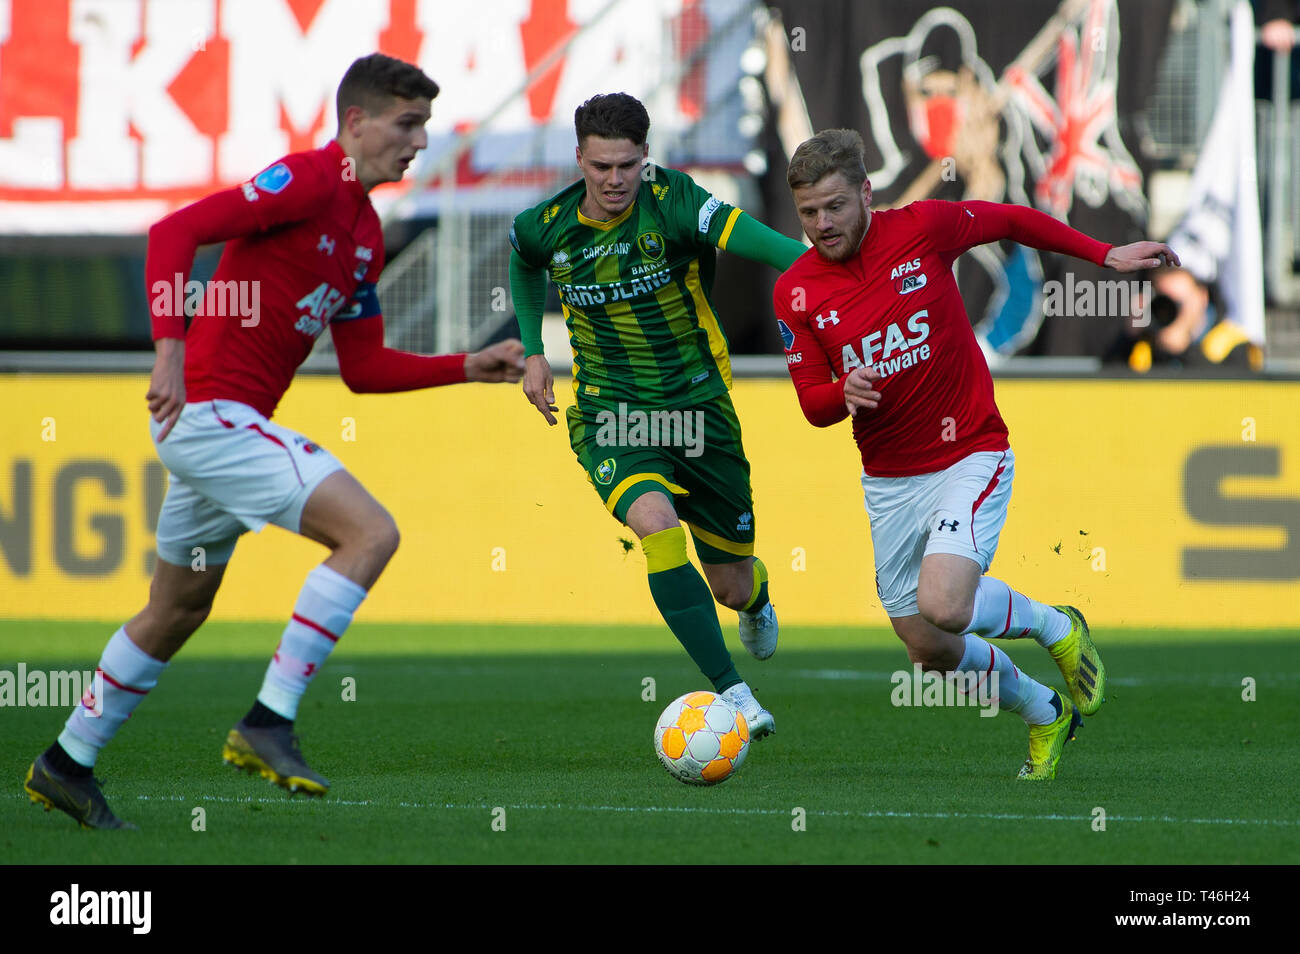 ce5b1f3e52b Sport And L Stock Photos   Sport And L Stock Images - Page 10 - Alamy